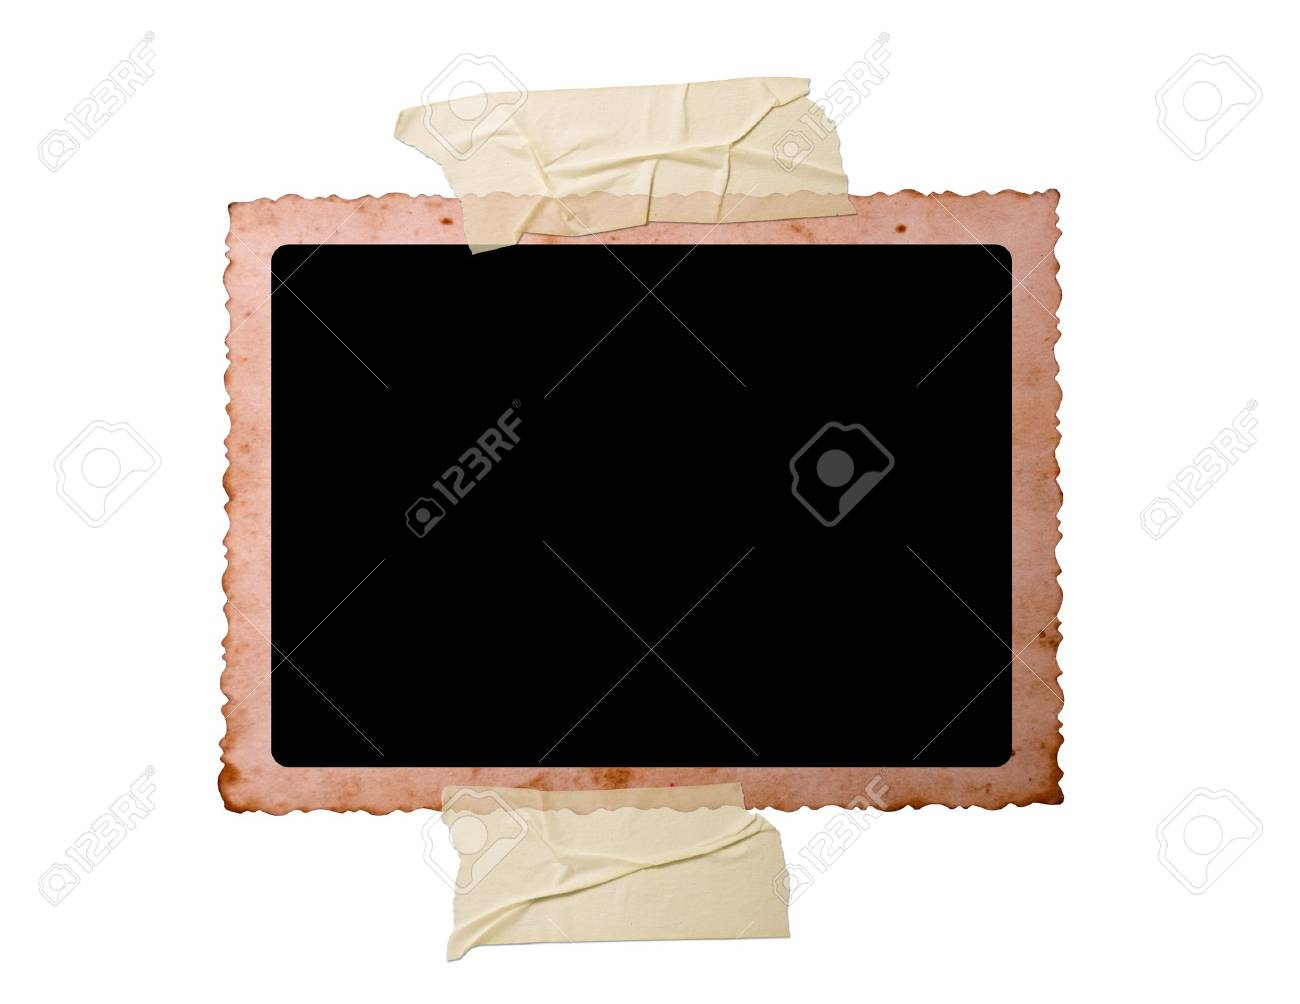 Vintage photo isolated on white background Stock Photo - 7605589